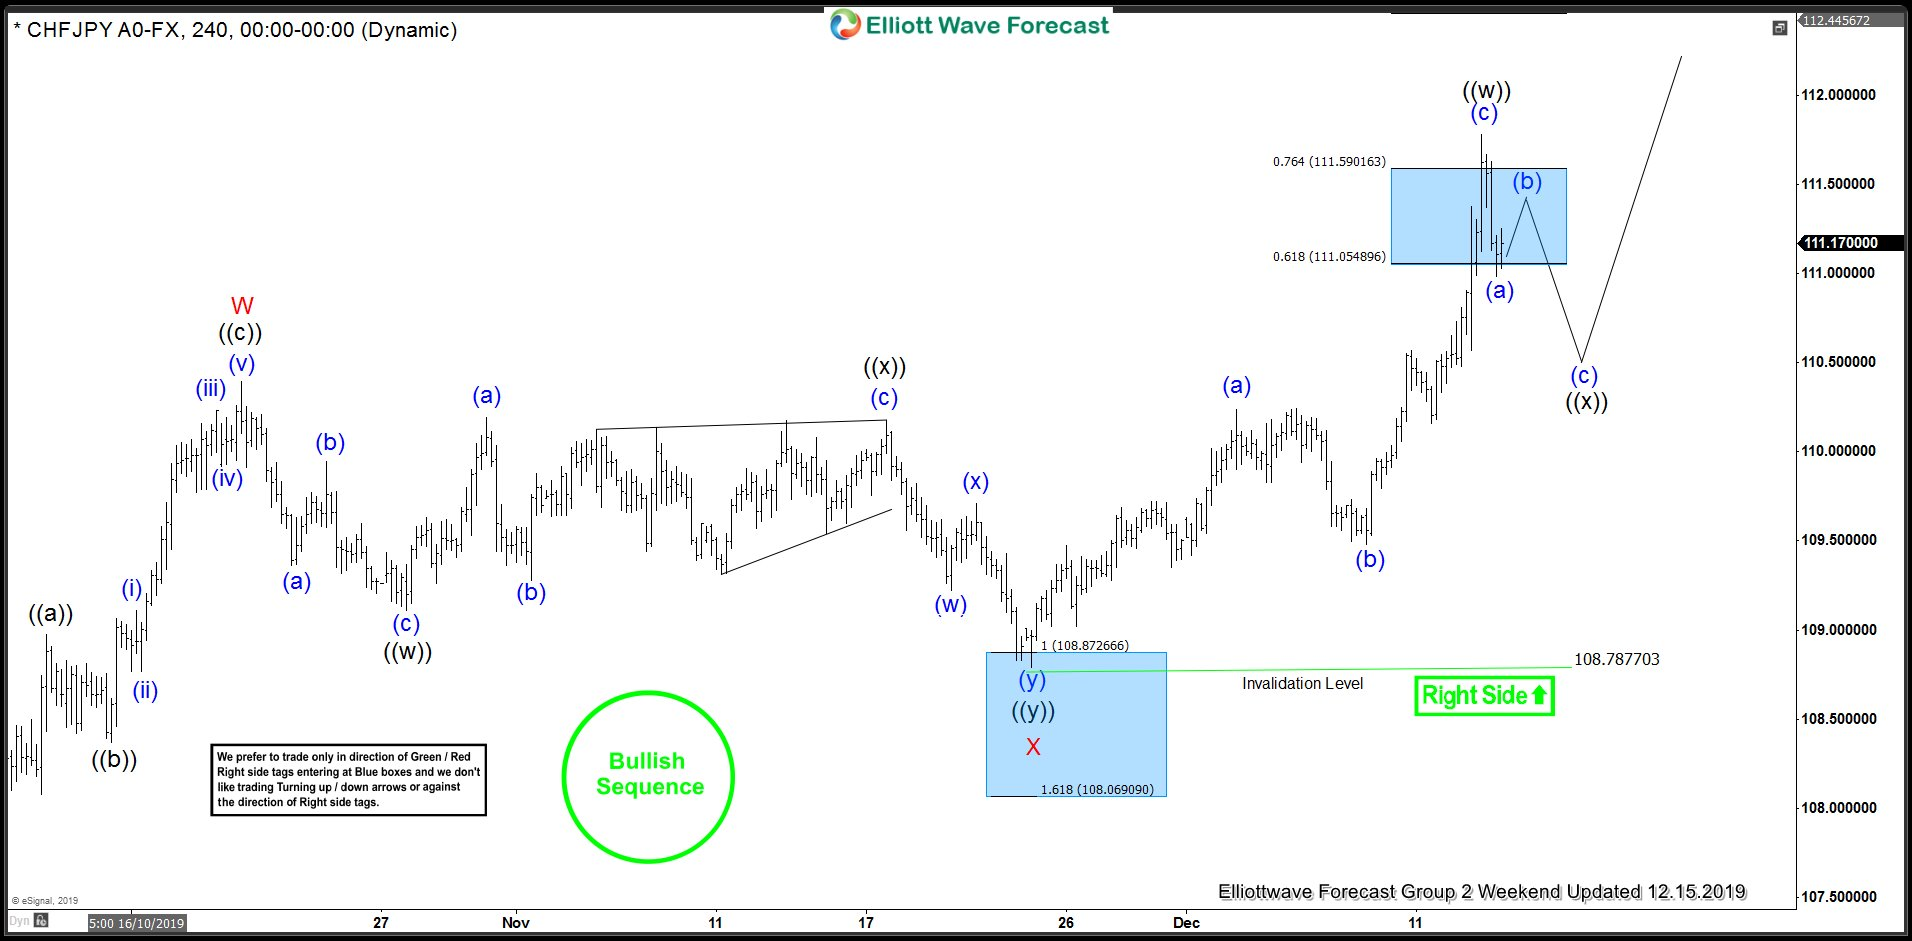 CHFJPY 12.15.2019 4 Hour Elliott Wave Update